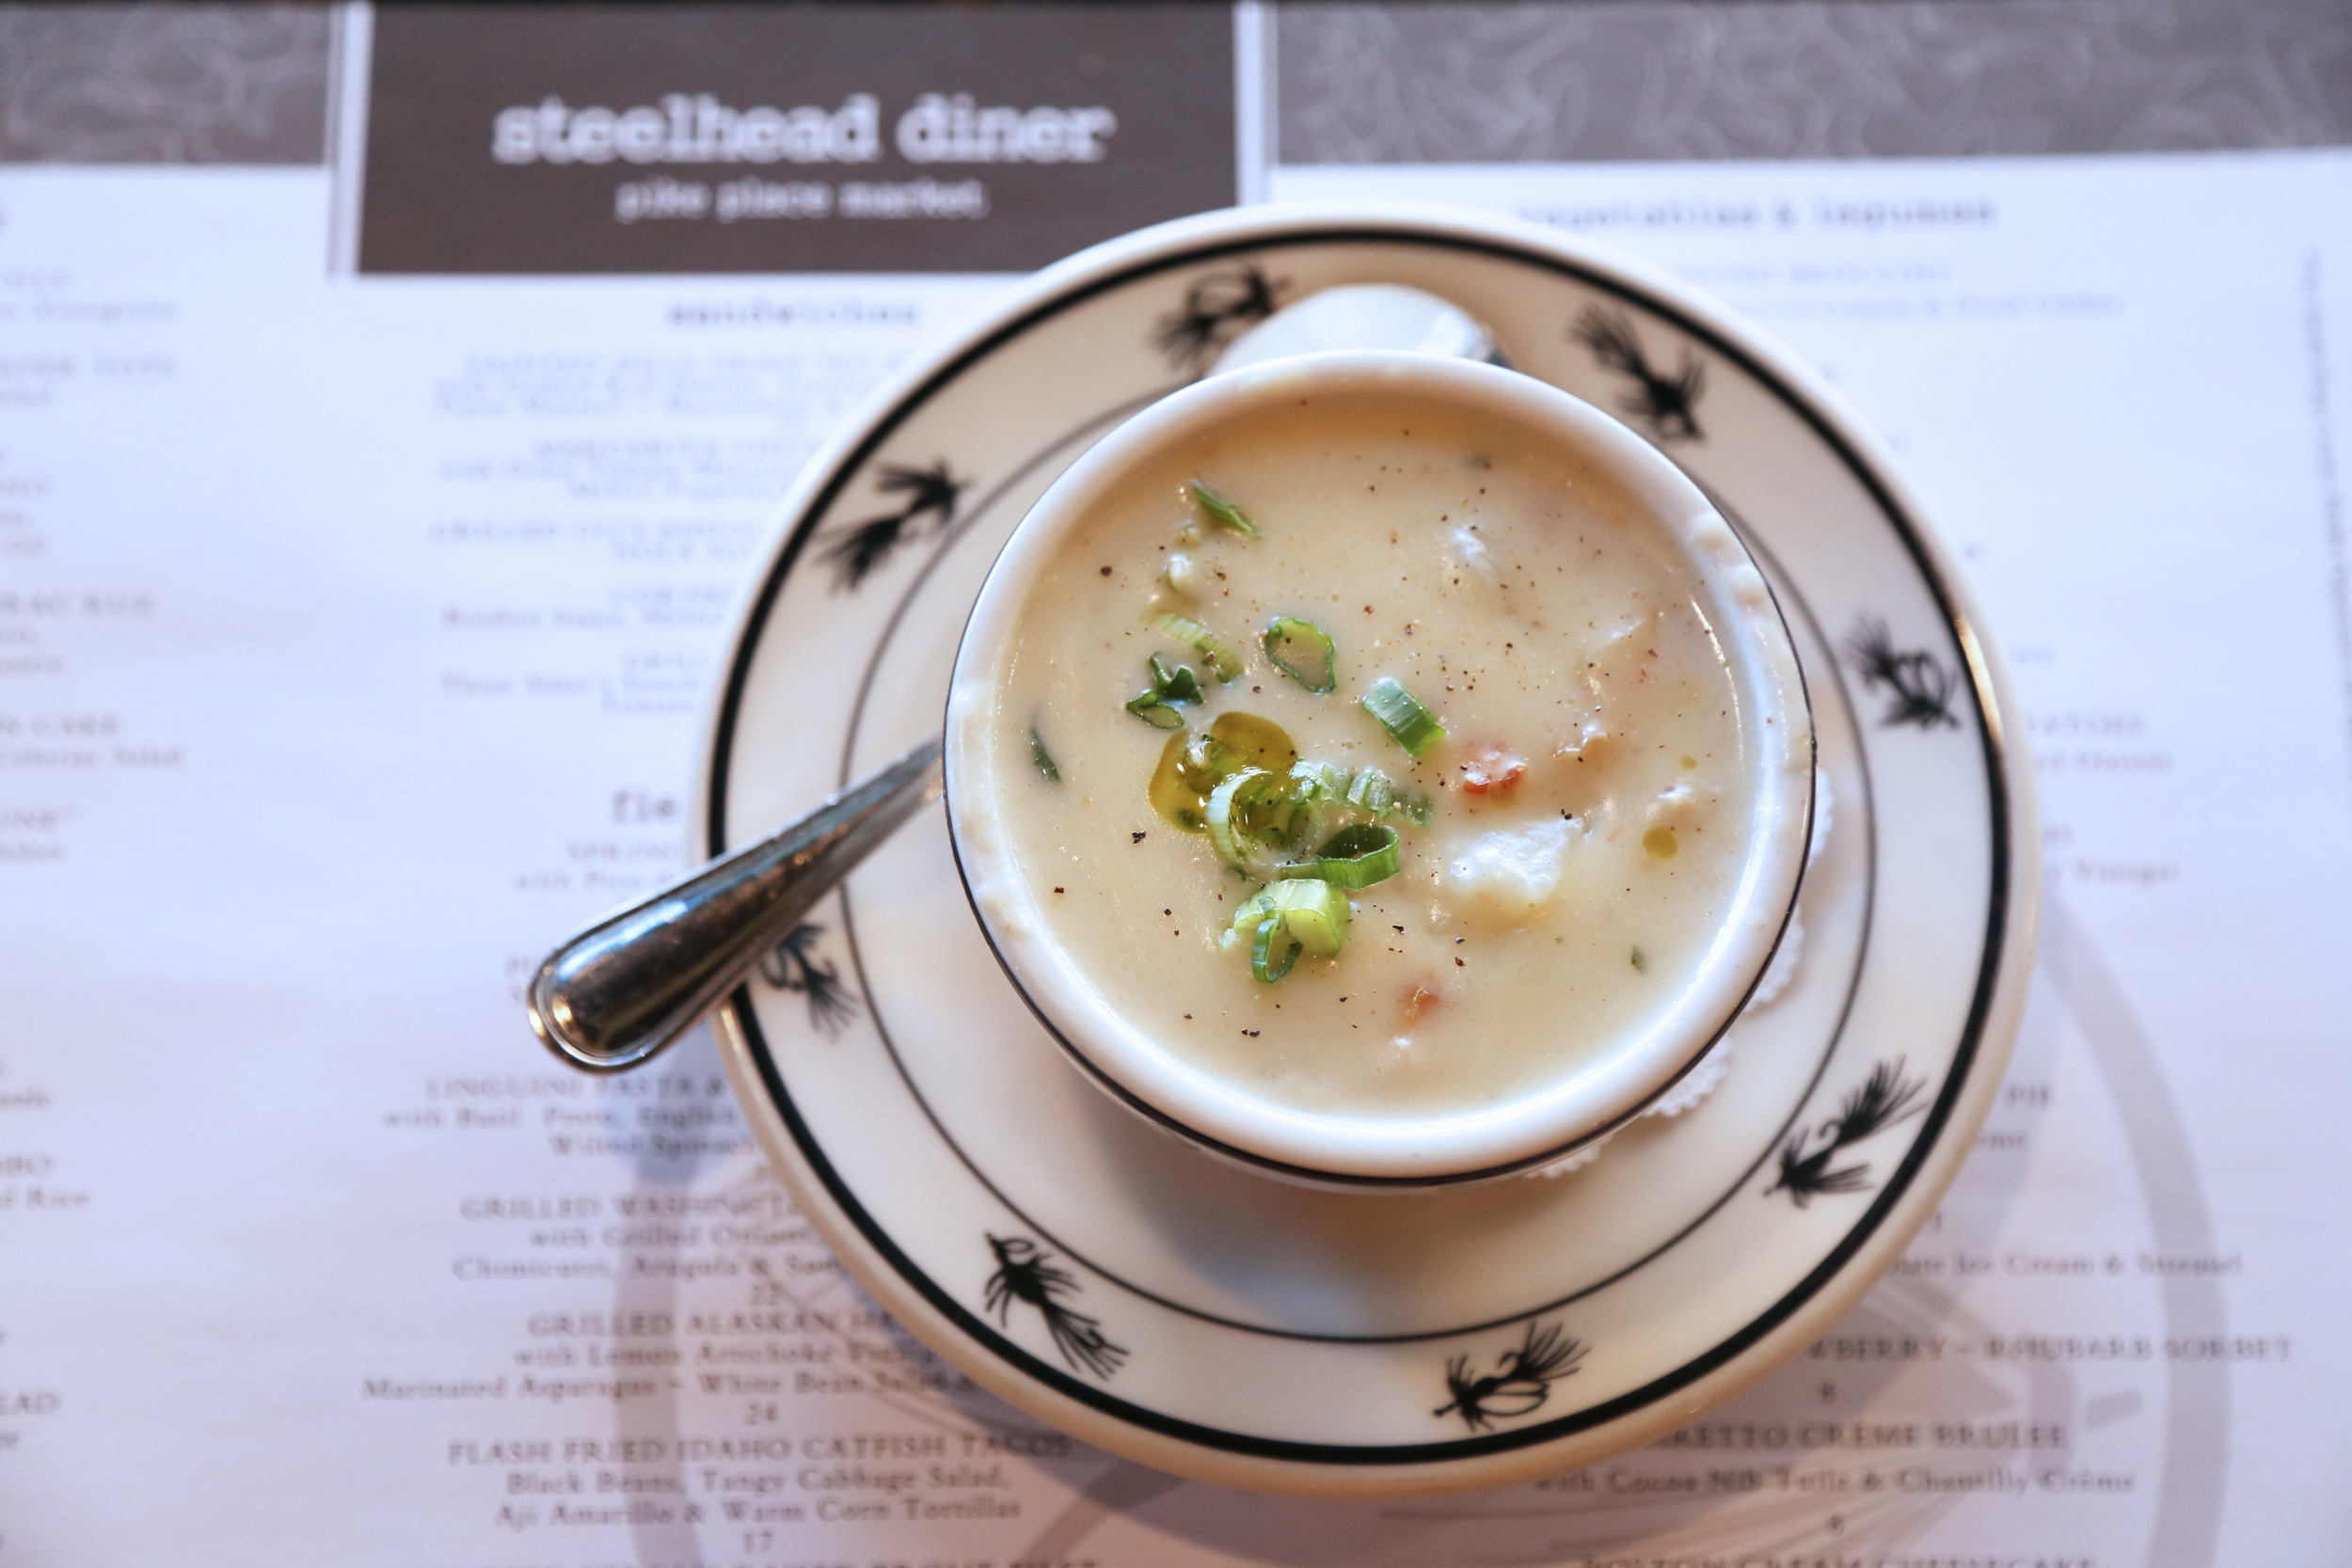 The clam chowder at Steelhead Diner is a must-try.